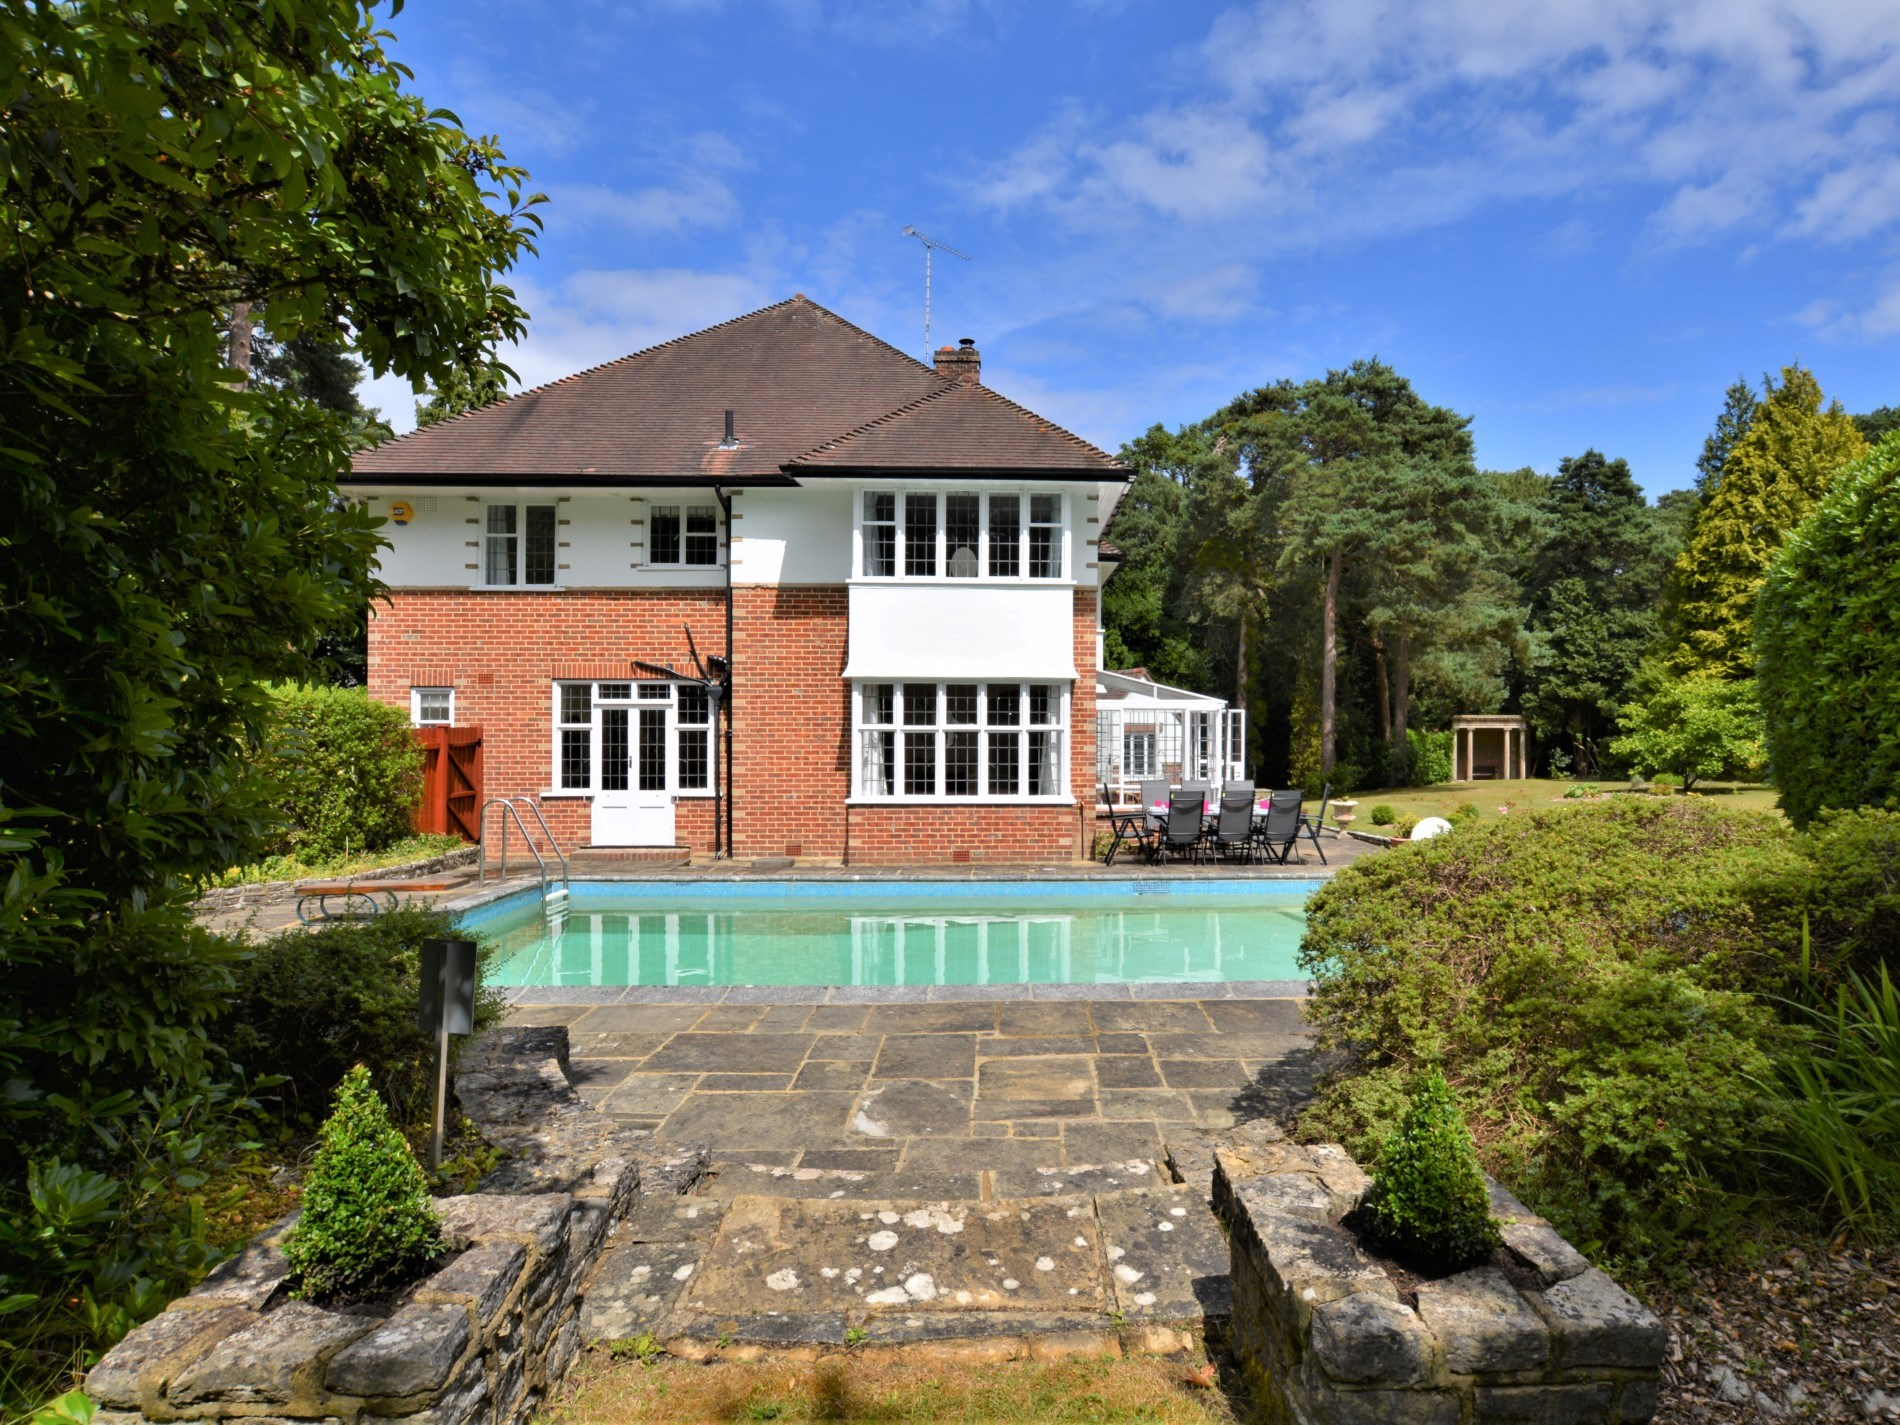 Looking towards the property and swimming pool